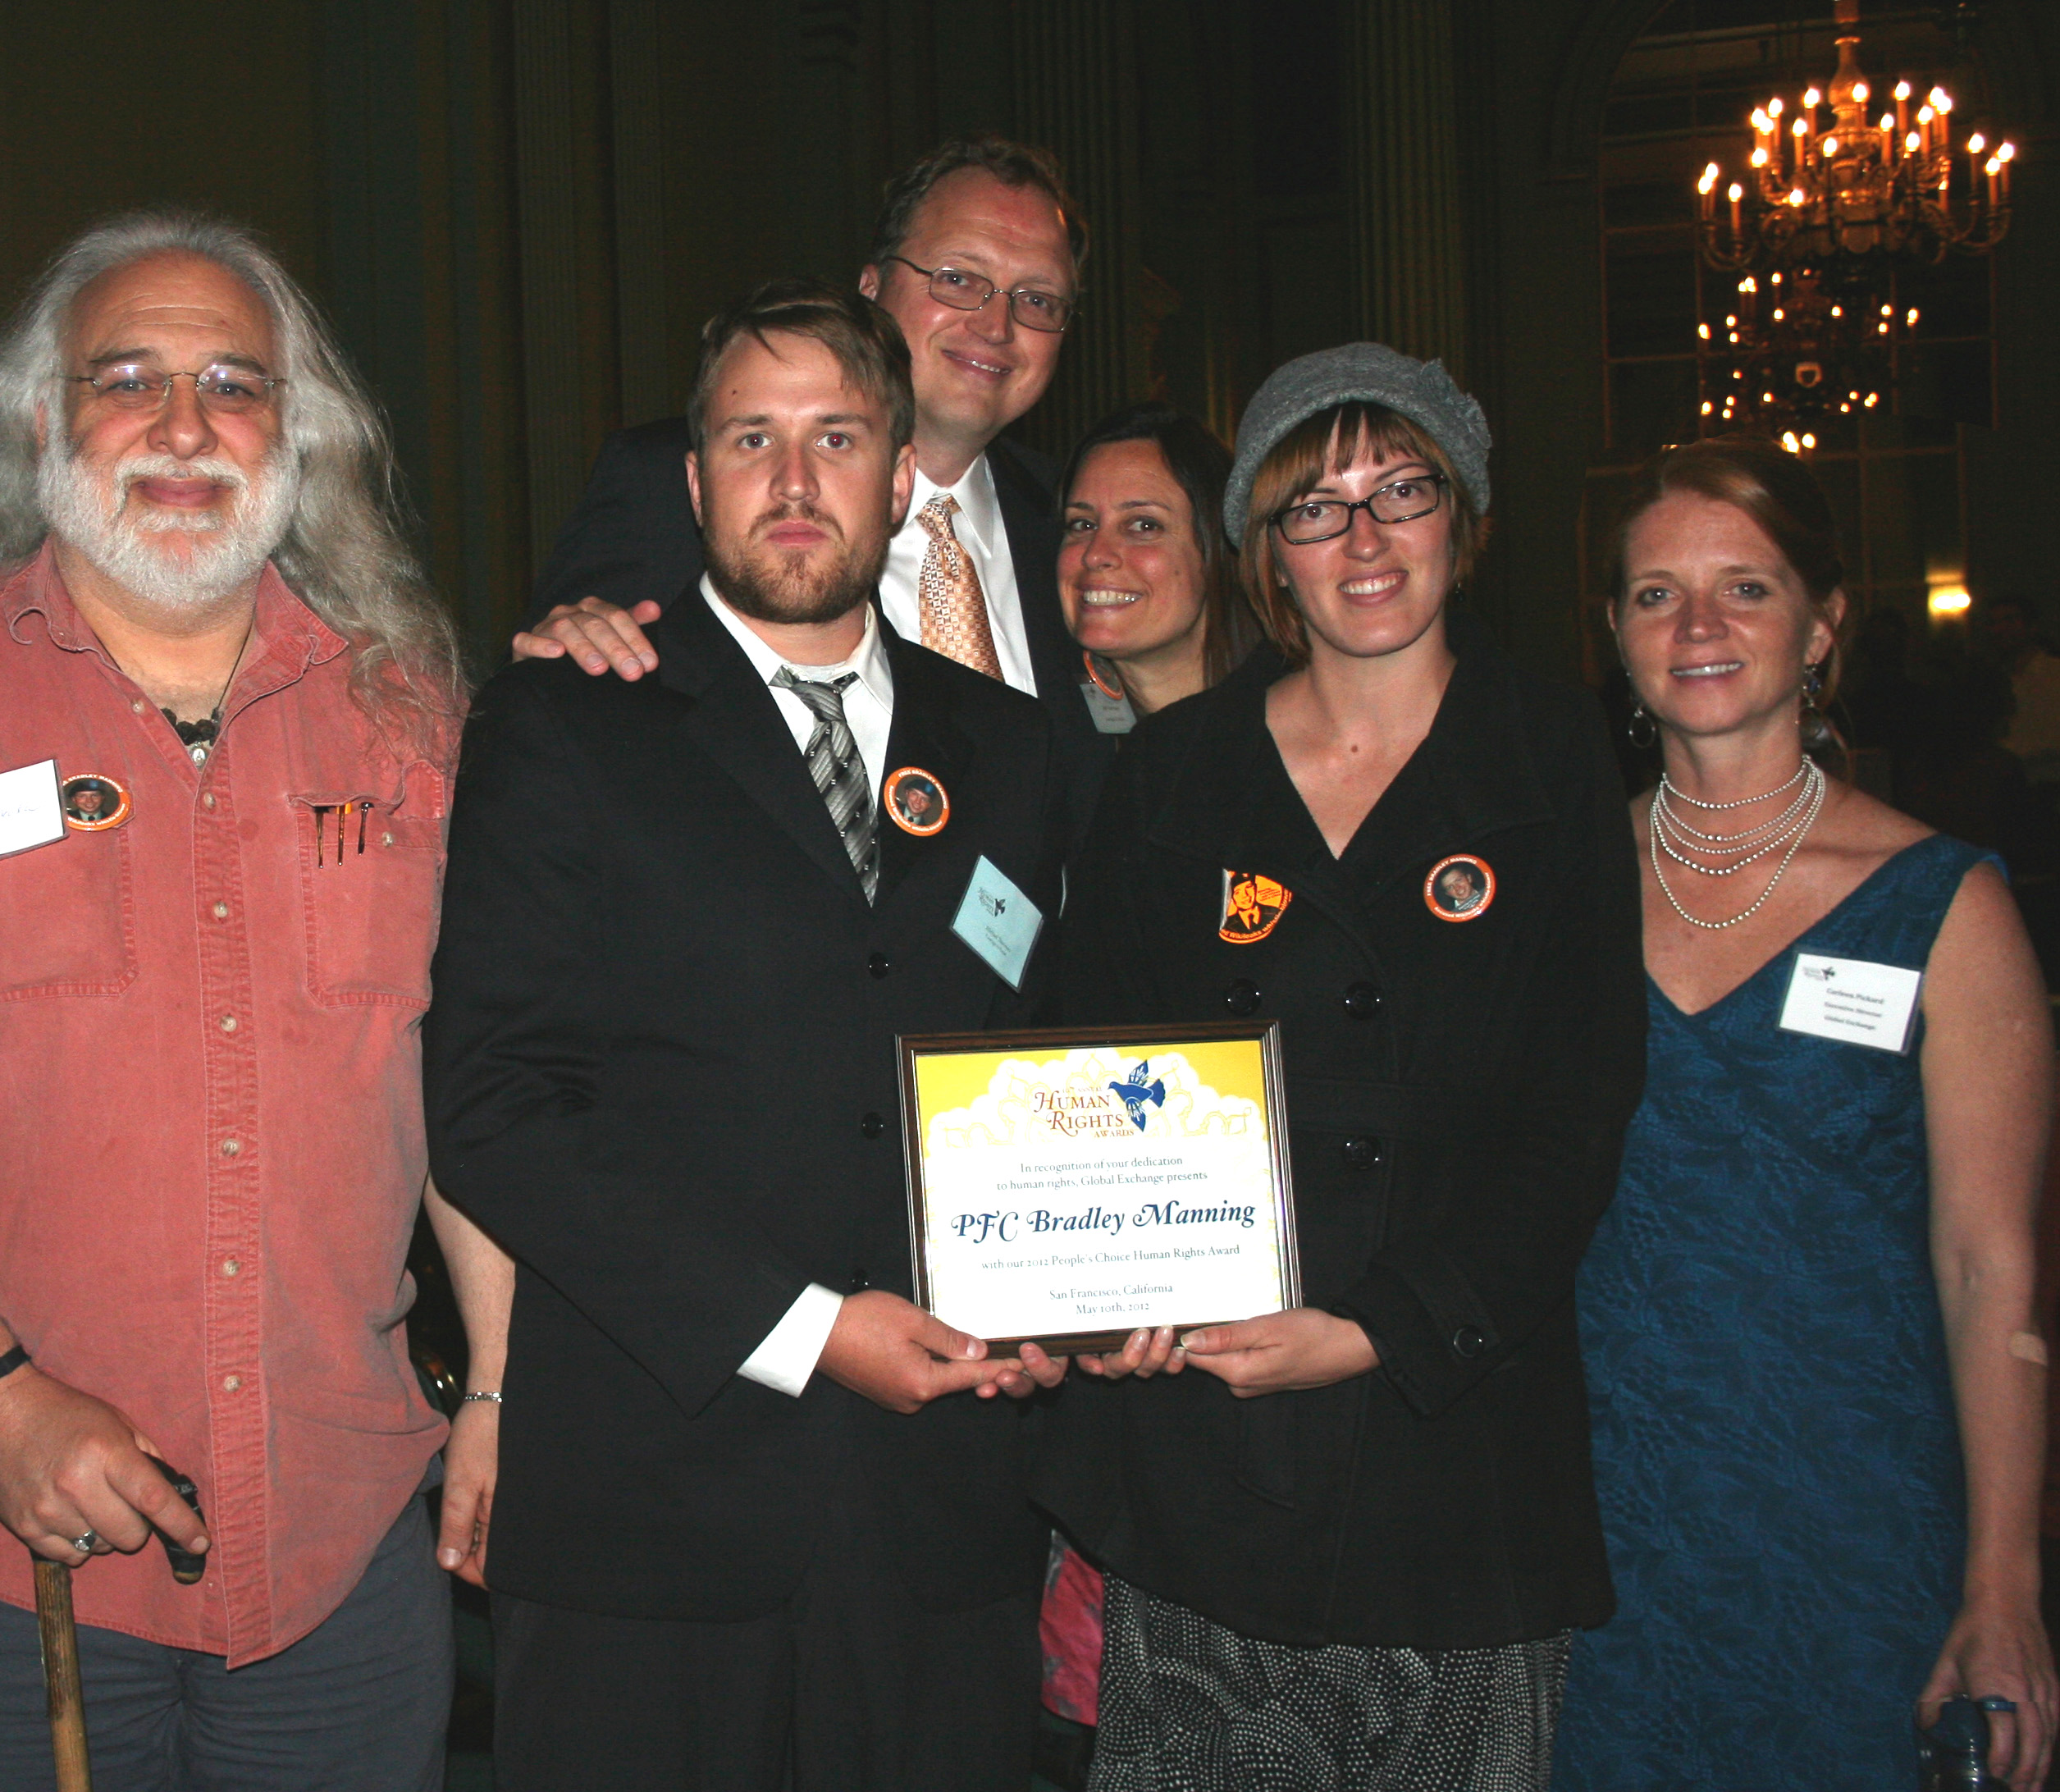 Bradley Manning Support Network guests with People's Choice Award and Carleen Pickard